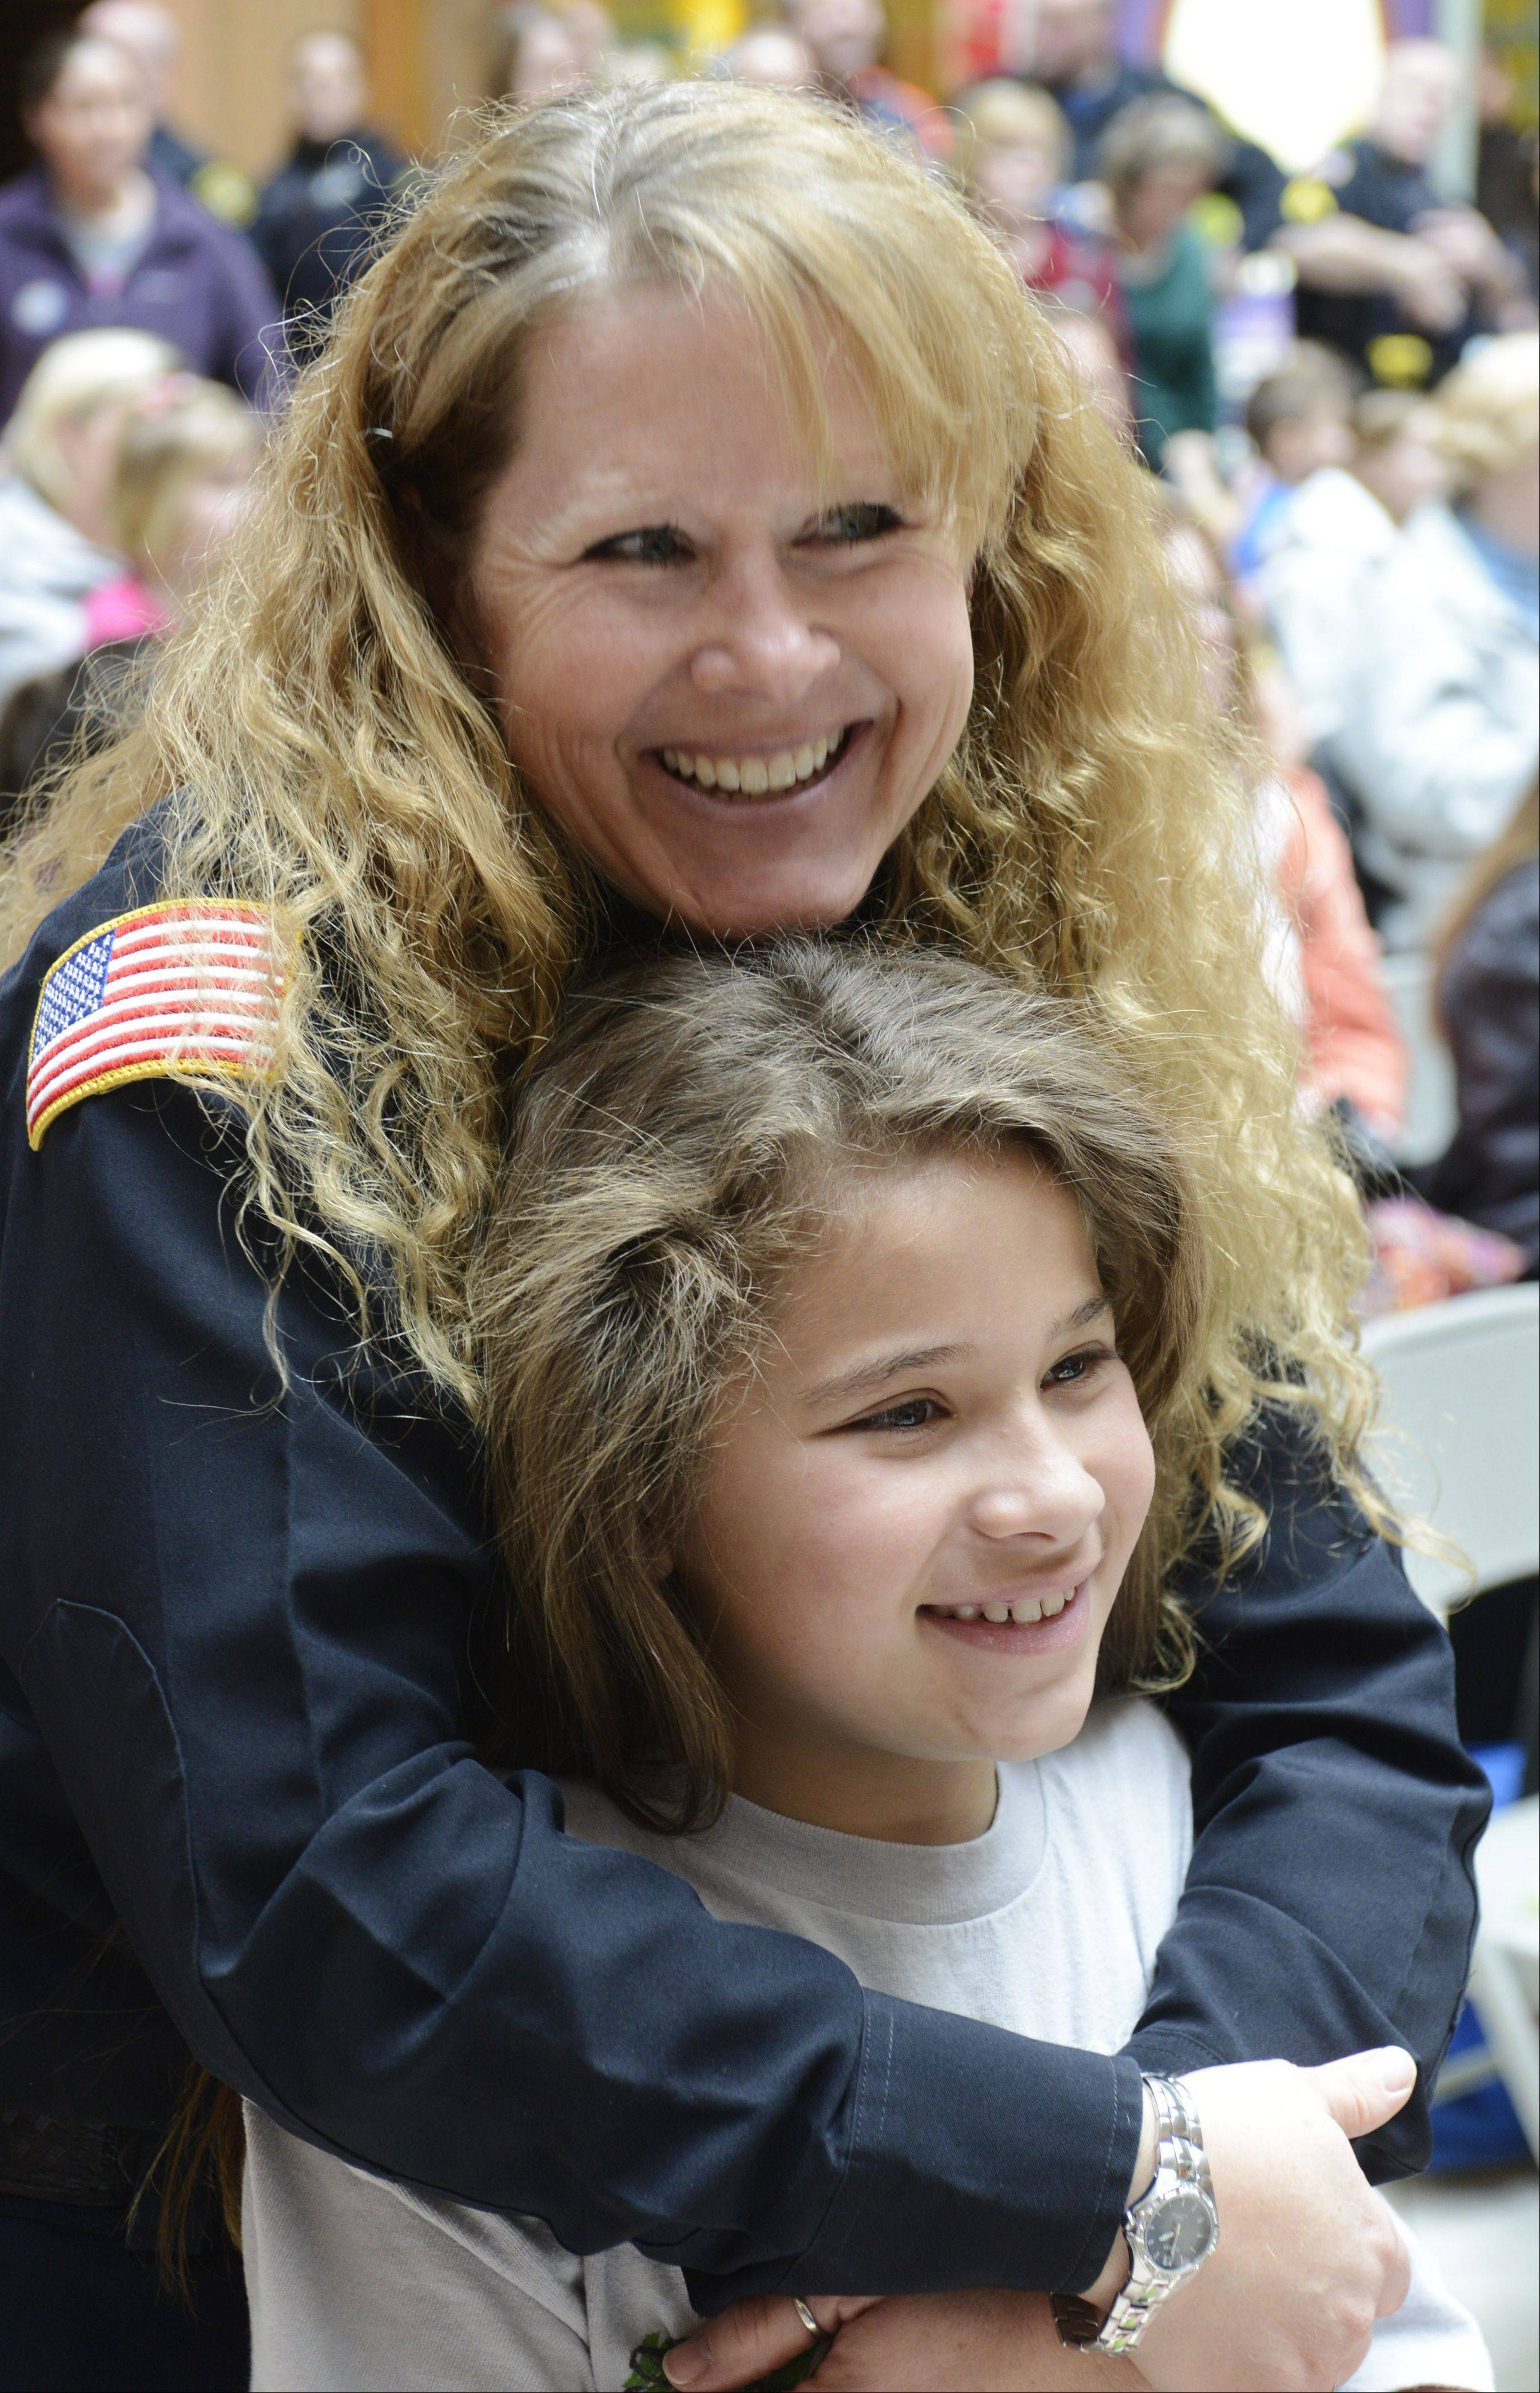 Vernon Hills Police Officer Sharon Joseph and her daughter Kaitlyn, 9, wait for their turns to have their heads shaved during Saturday's St. Baldrick's Foundation festivities at Westfield Hawthorn Mall.